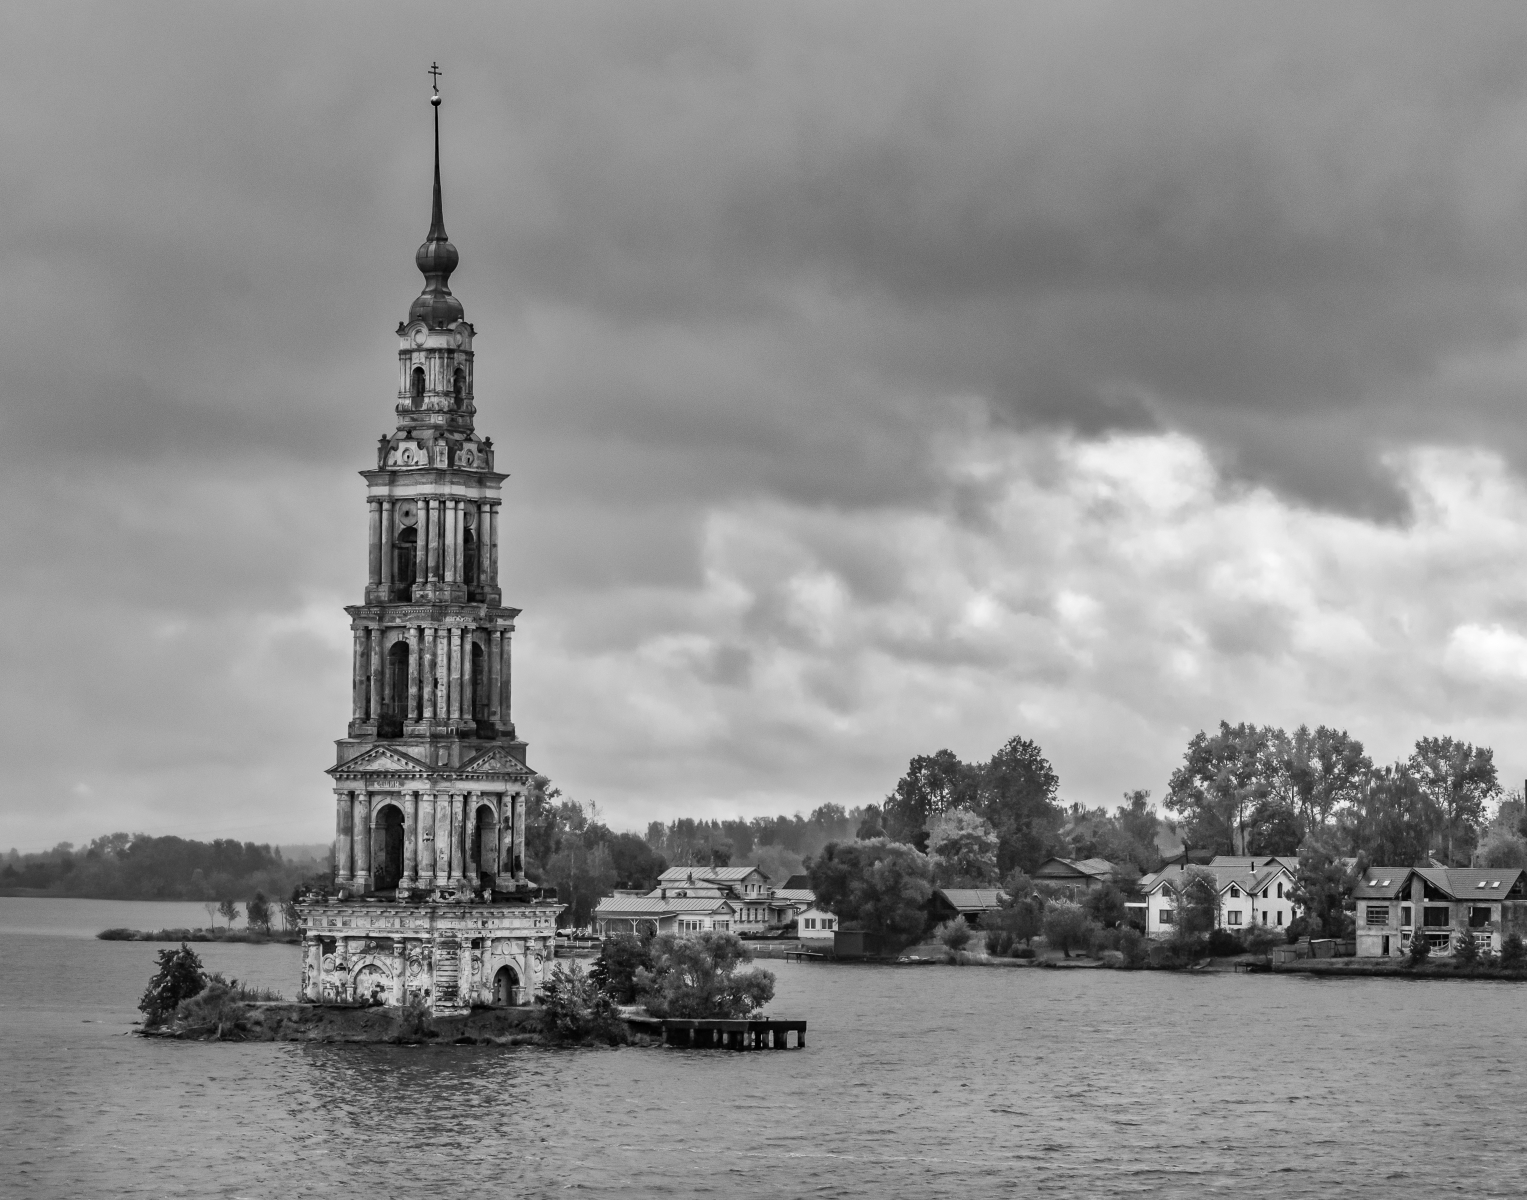 'Flooded bell tower on the Volga River_ Russia' (MB 1 Place) by Robert Adler - RO